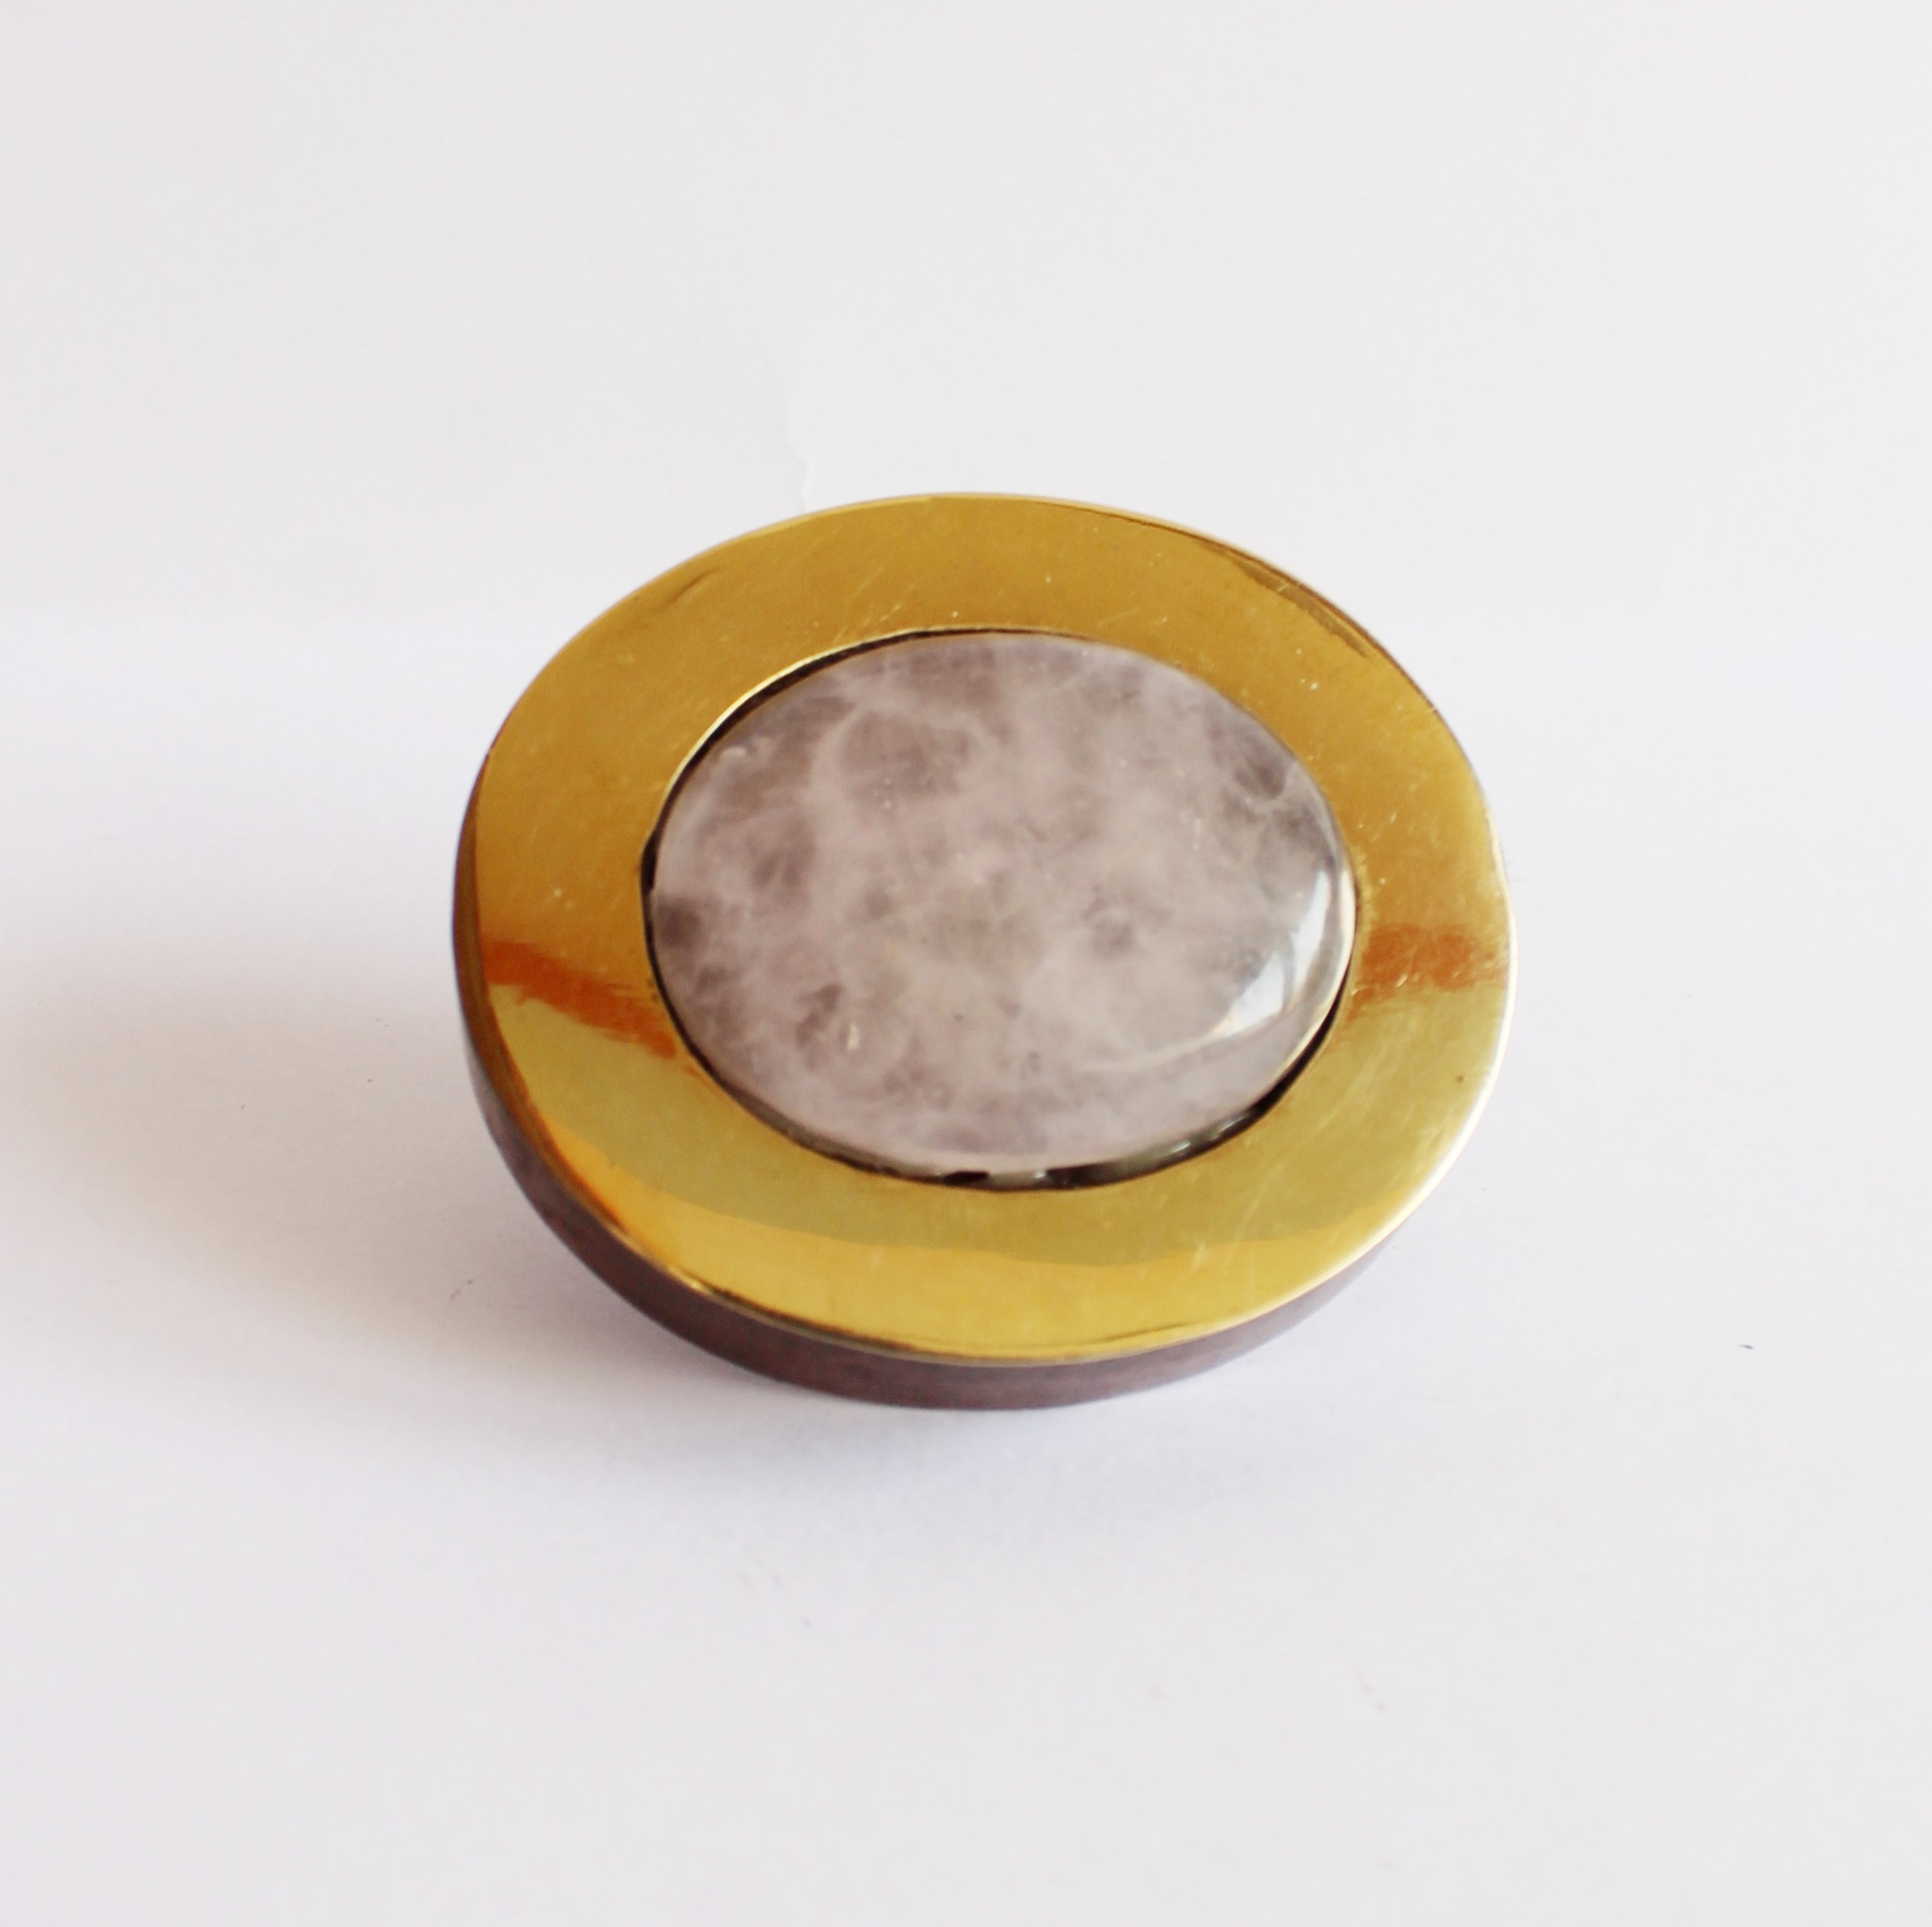 Oval wooden knob with brass with Rose quartz